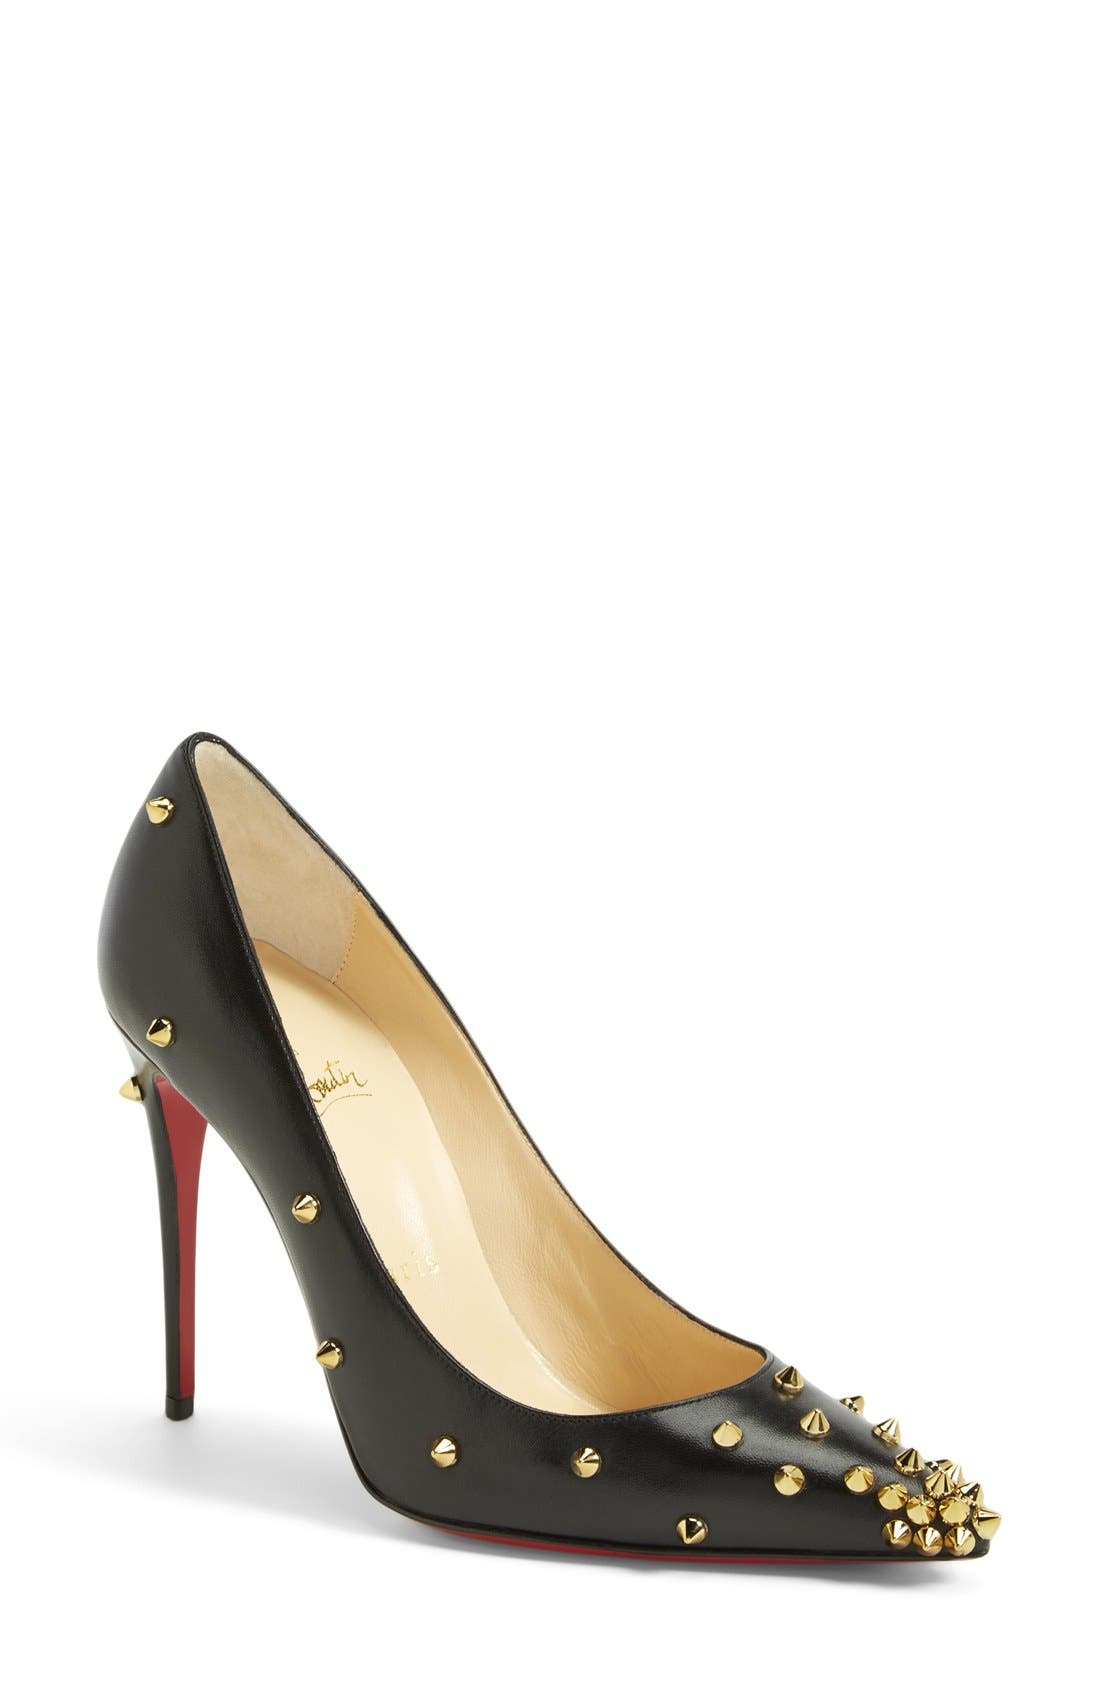 Alternate Image 1 Selected - Christian Louboutin 'Spike' Pointy Toe Pump